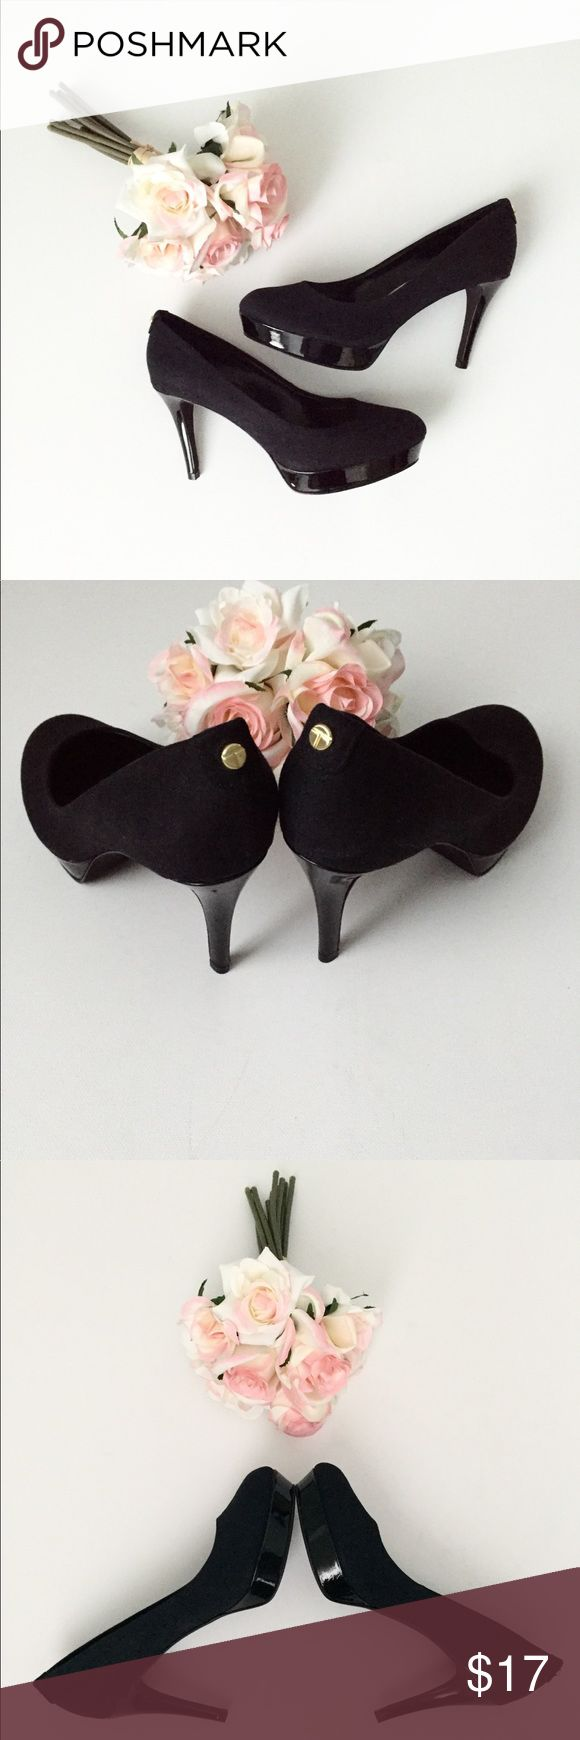 Black pumps platform size 6.5 Black platform pumps! Gorgeous! Black Patton leather heals and platform with black cloth body. Surprisingly soft and comfy and in great condition! Tahari Shoes Heels